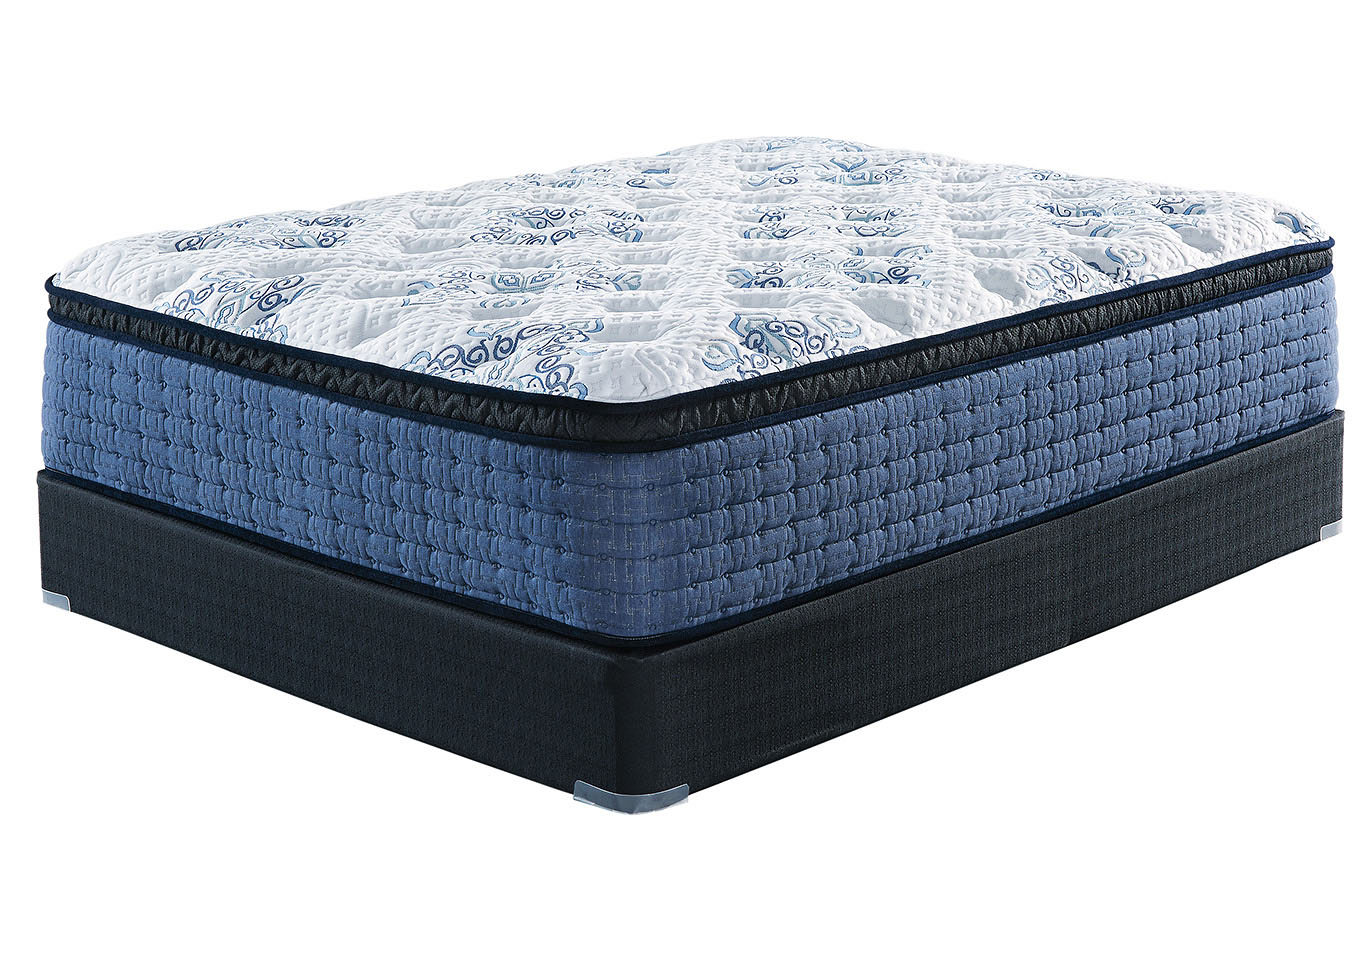 Mt. Dana White Eurotop King Mattress w/Foundation,Sierra Sleep by Ashley